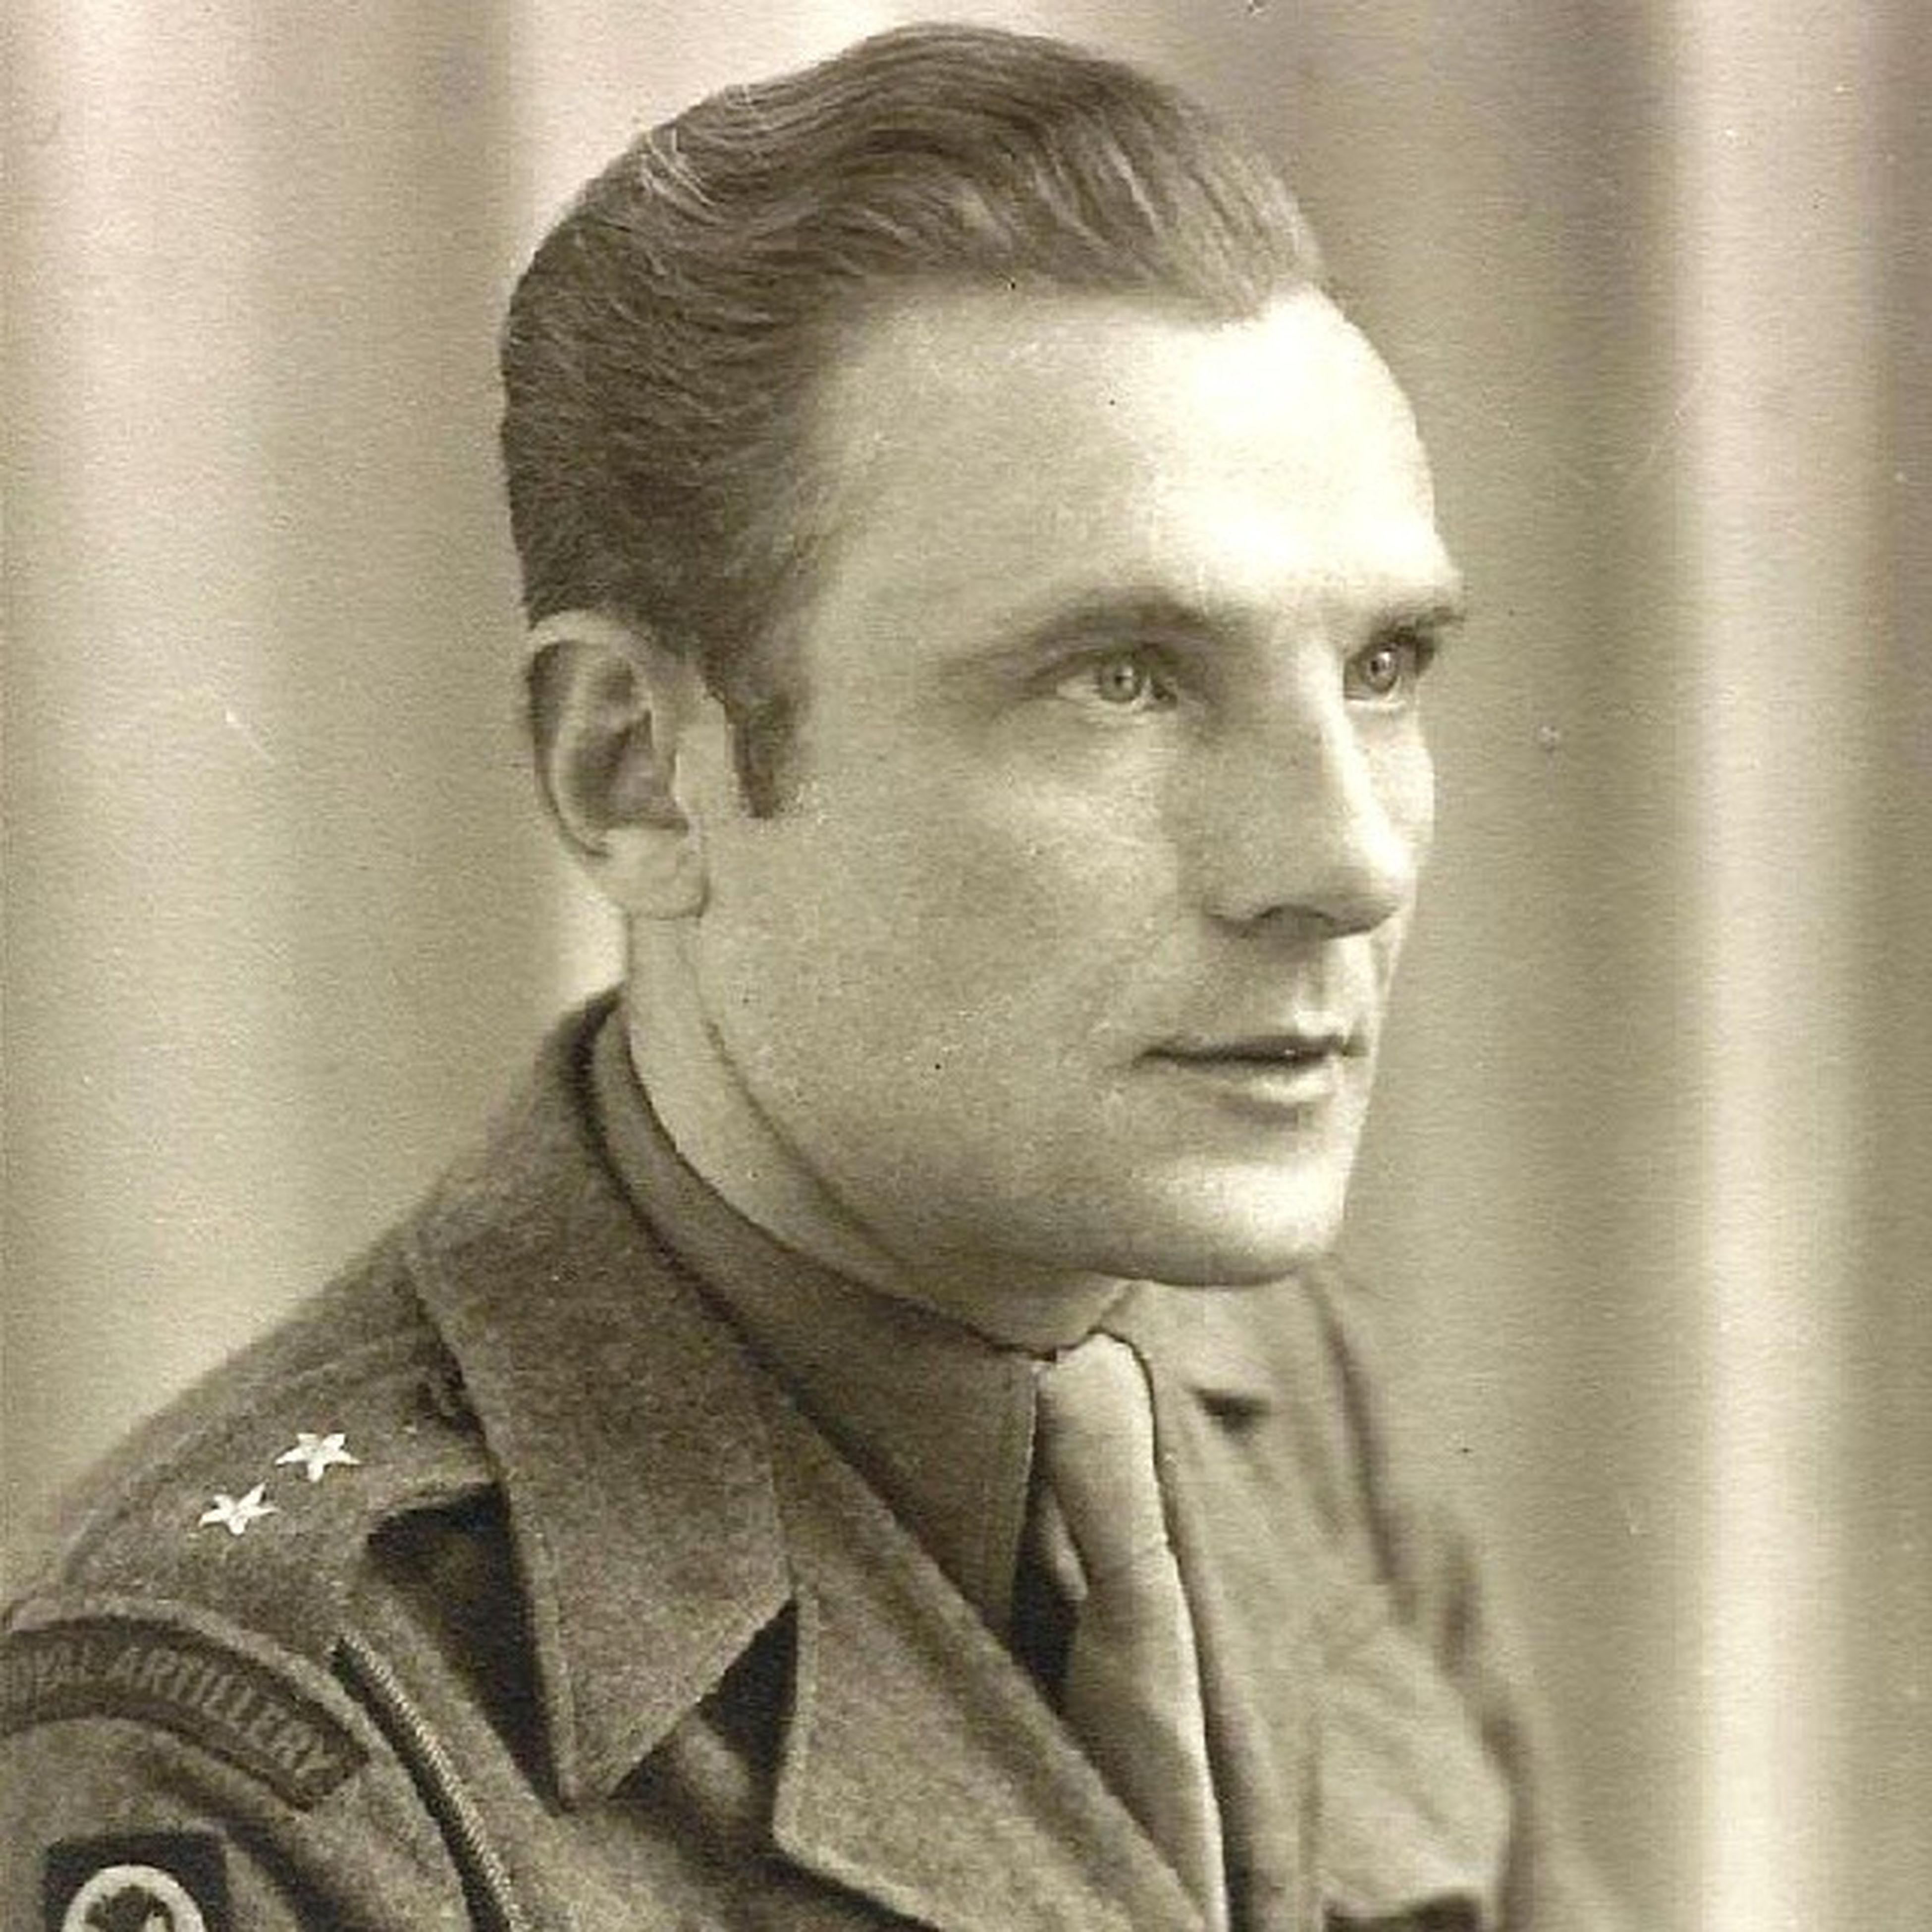 Throwback Thursday this week is a tribute to my grandpa Leon. He would've been 101 years old this year. He went through a lot in Ww2 starting as a Polish officer, going through a German Oflag Pow camp and ended up in Her Majesty's Armed Forces. Great man, influenced my dad a lot. Would like to find more traits of his character in myself. Throwbackthursday